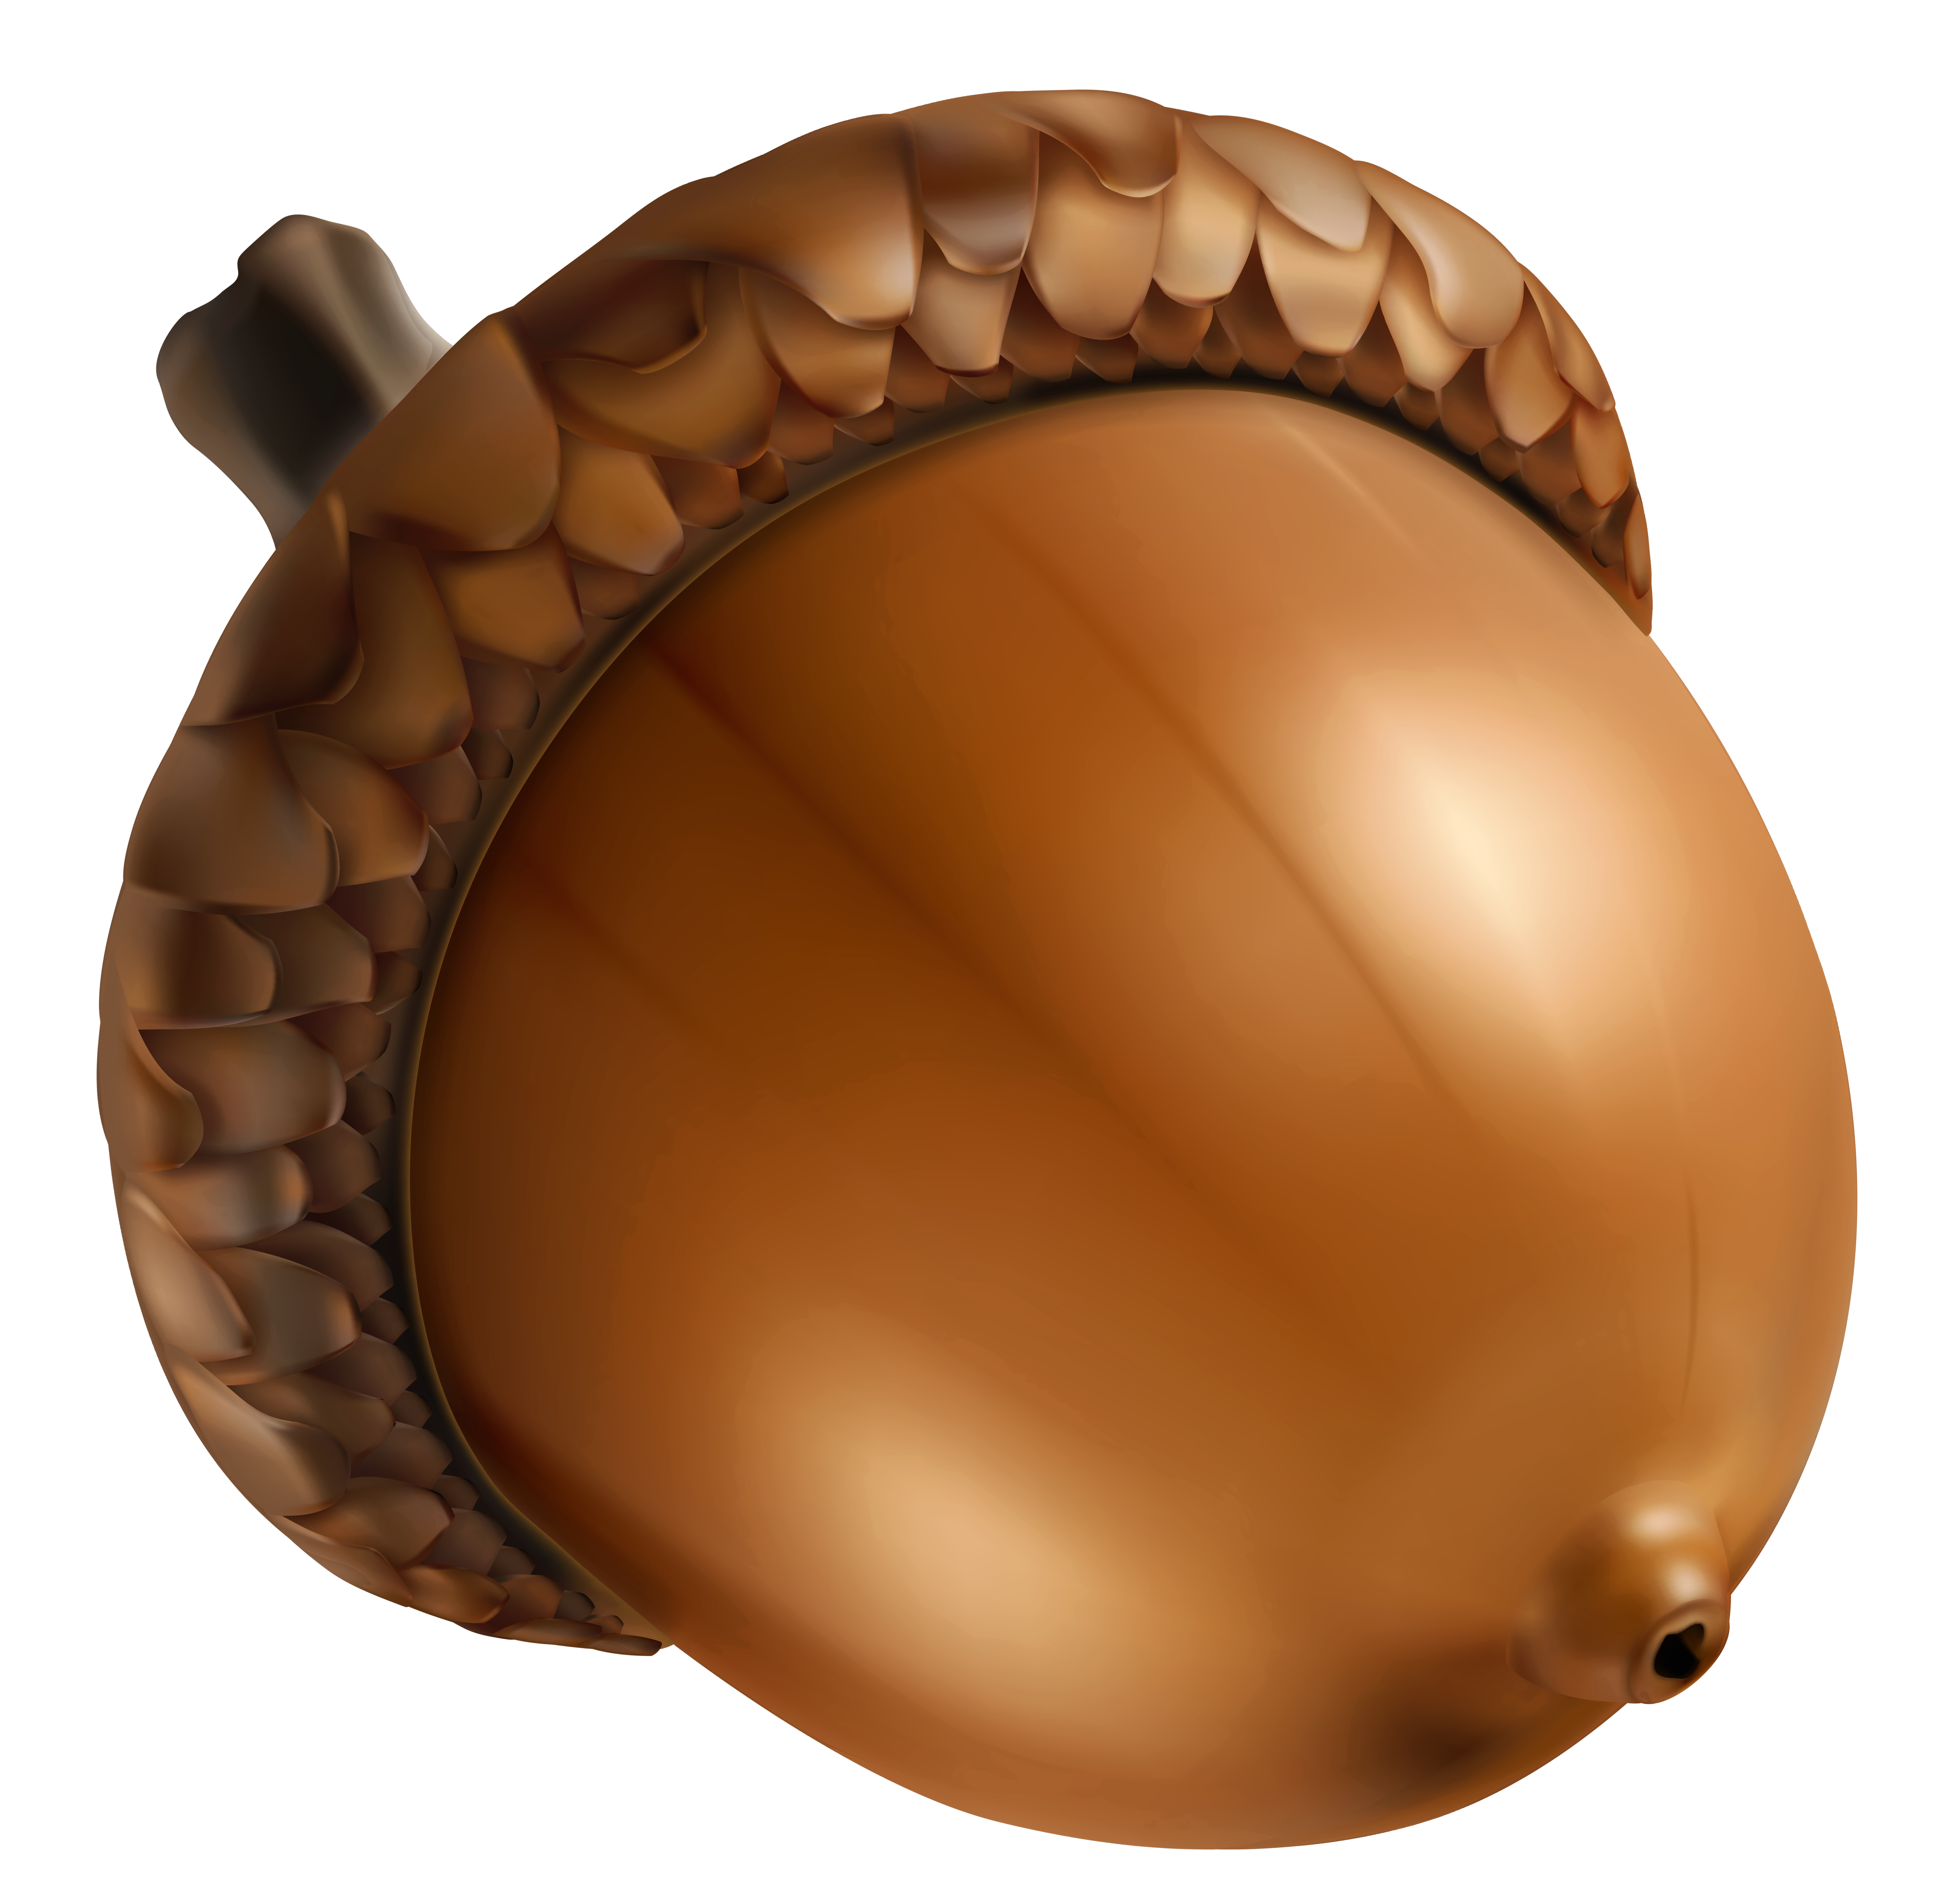 Acorn Png - View full size ?